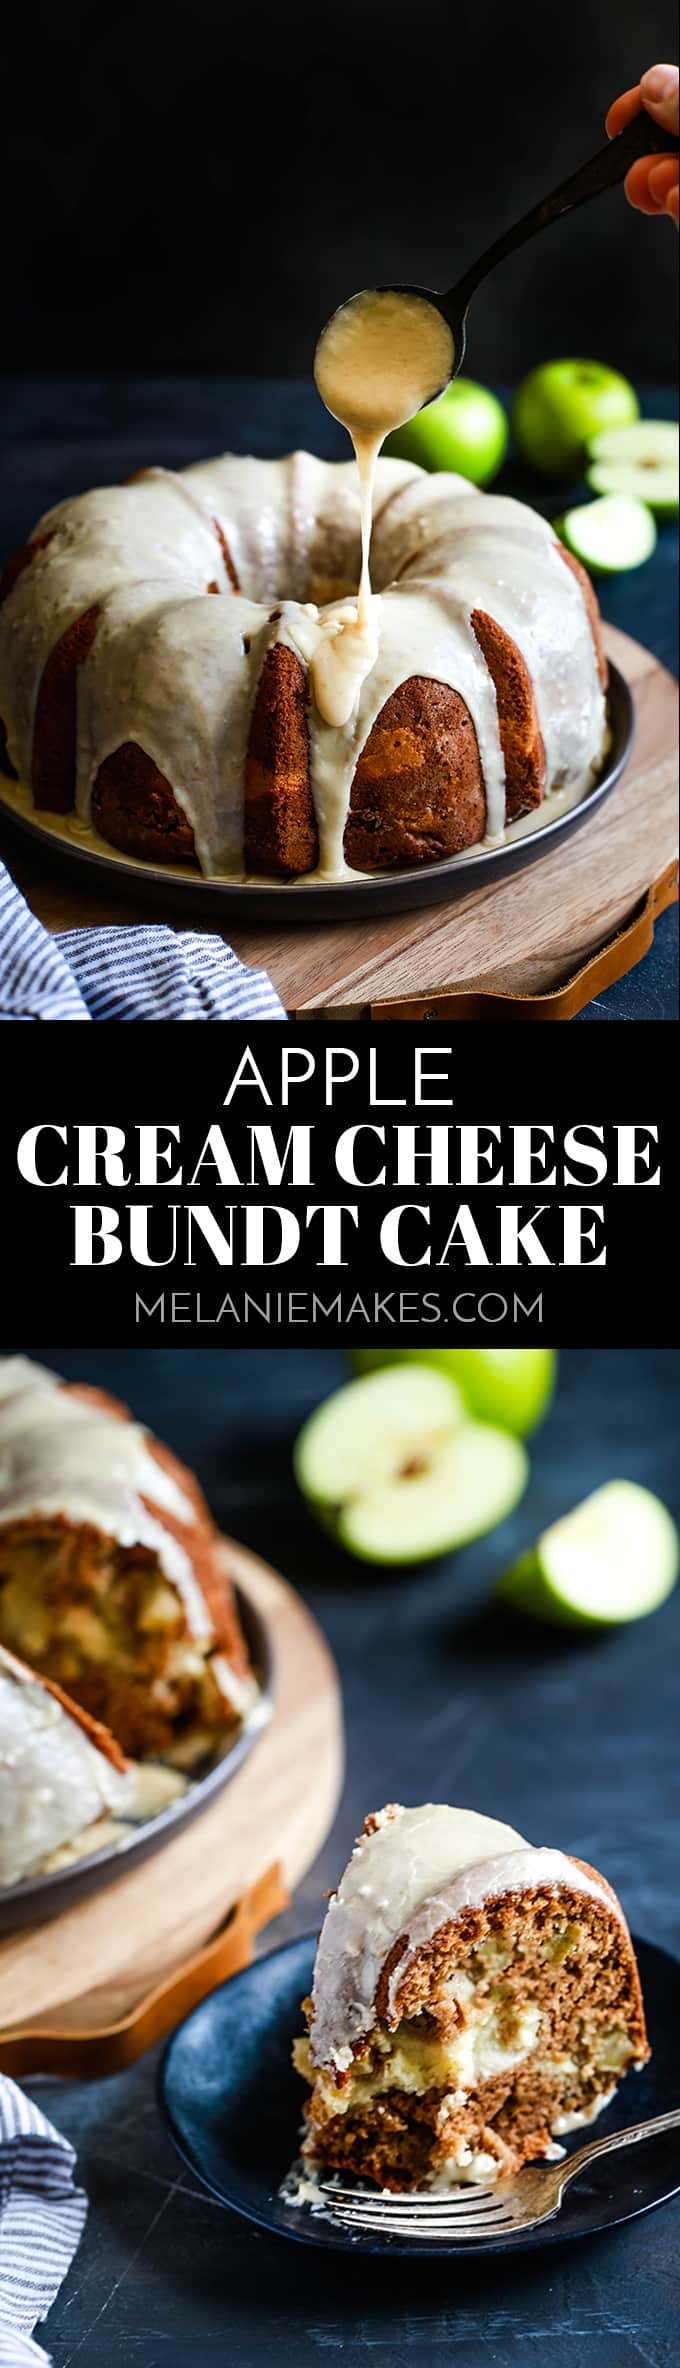 This Apple Cream Cheese Bundt Cake recipe is the perfect fall - or anytime! - dessert.  I dare you not to fall in love with this cinnamon spiked, apple studded cake with a tunnel of cream cheese baked inside and cloaked with caramel icing. #apples #applecake #cake #cakerecipes #icing #caramel #autumn #fallrecipes